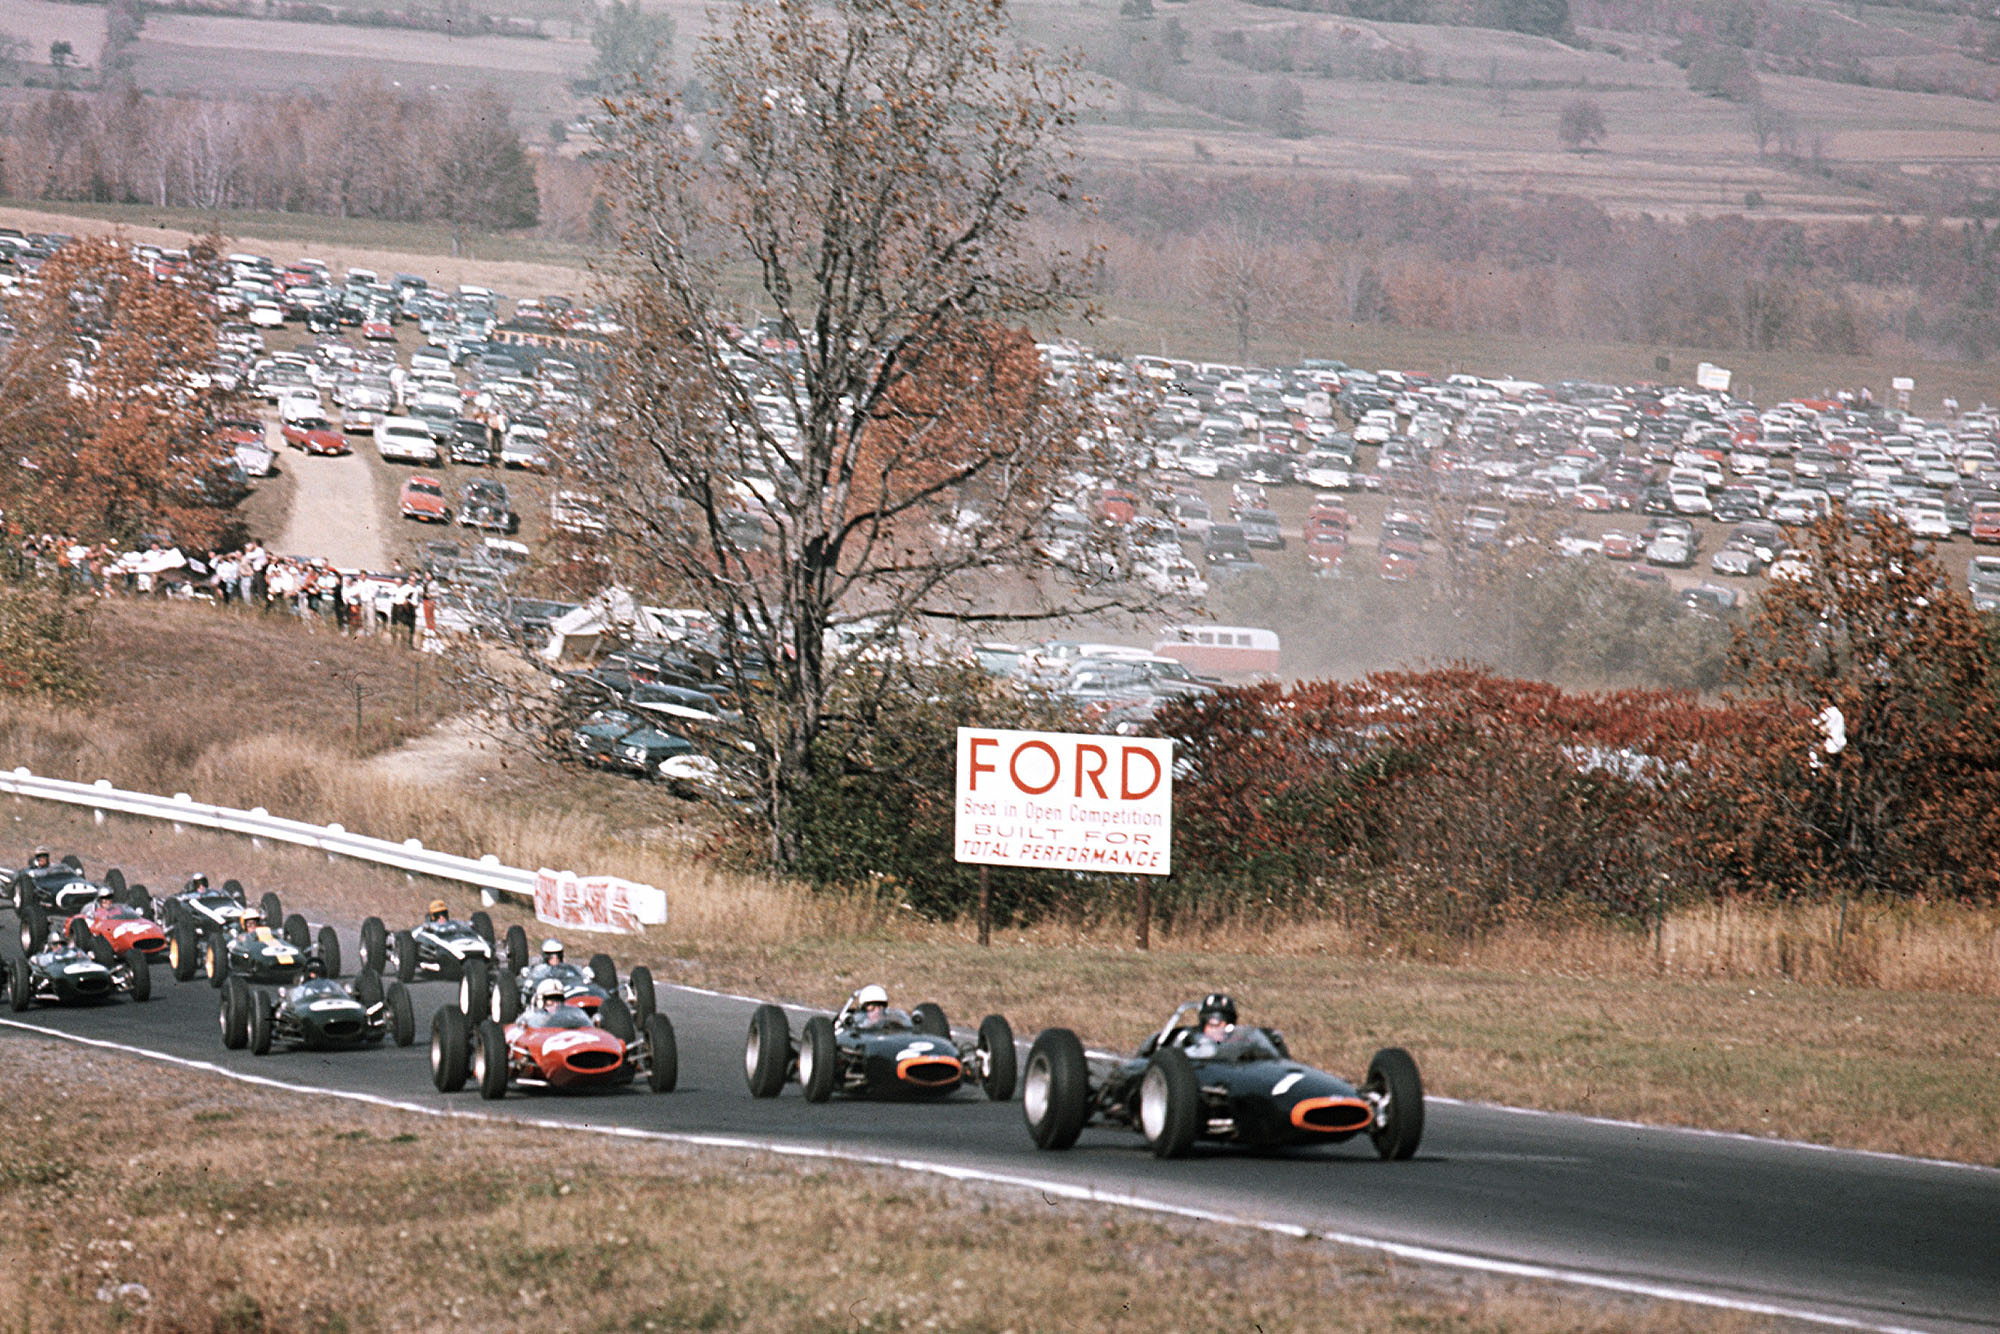 Graham Hill (BRM P57) leads team mate Richie Ginther (BRM P57) and John Surtees (Ferrari 156) at the start.